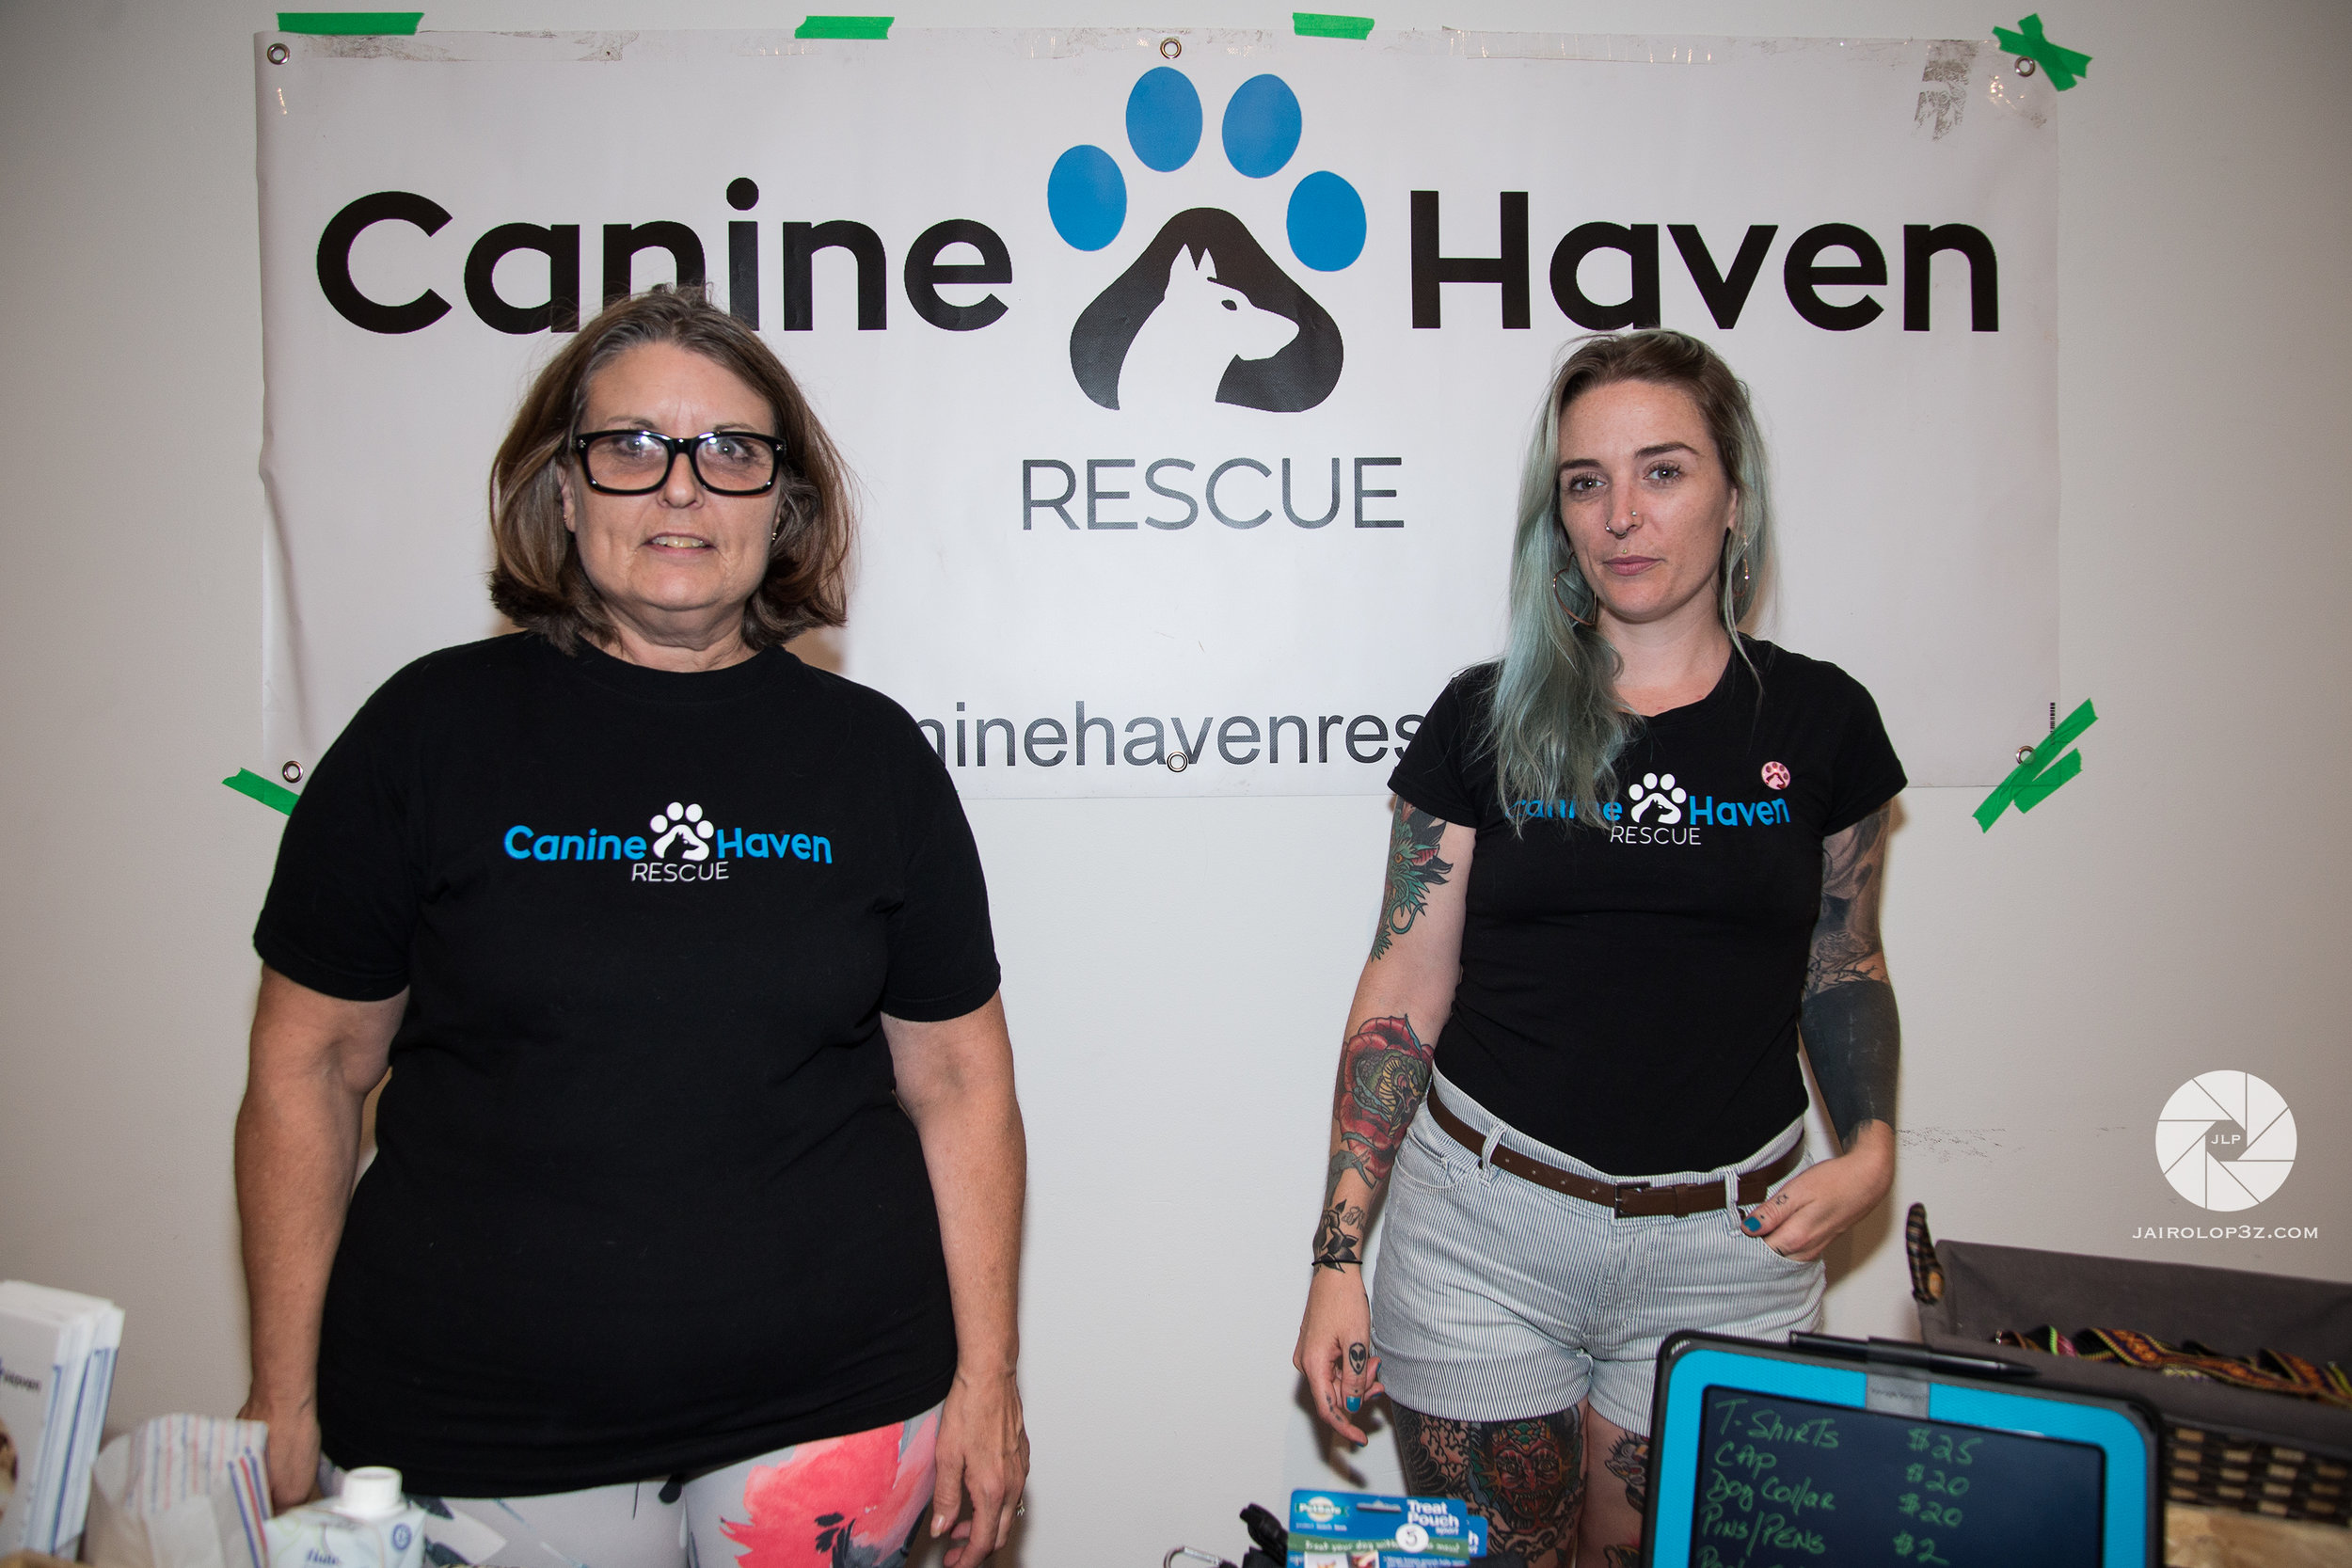 Canine Haven Rescue   also joined the event to help raise awareness about their organization which rescues dogs from Mexico, Dominican Republic, Saudi Arabia, Nepal, North America and any local surrenders. Canine Haven is a non-profit organization that is run only by volunteers.